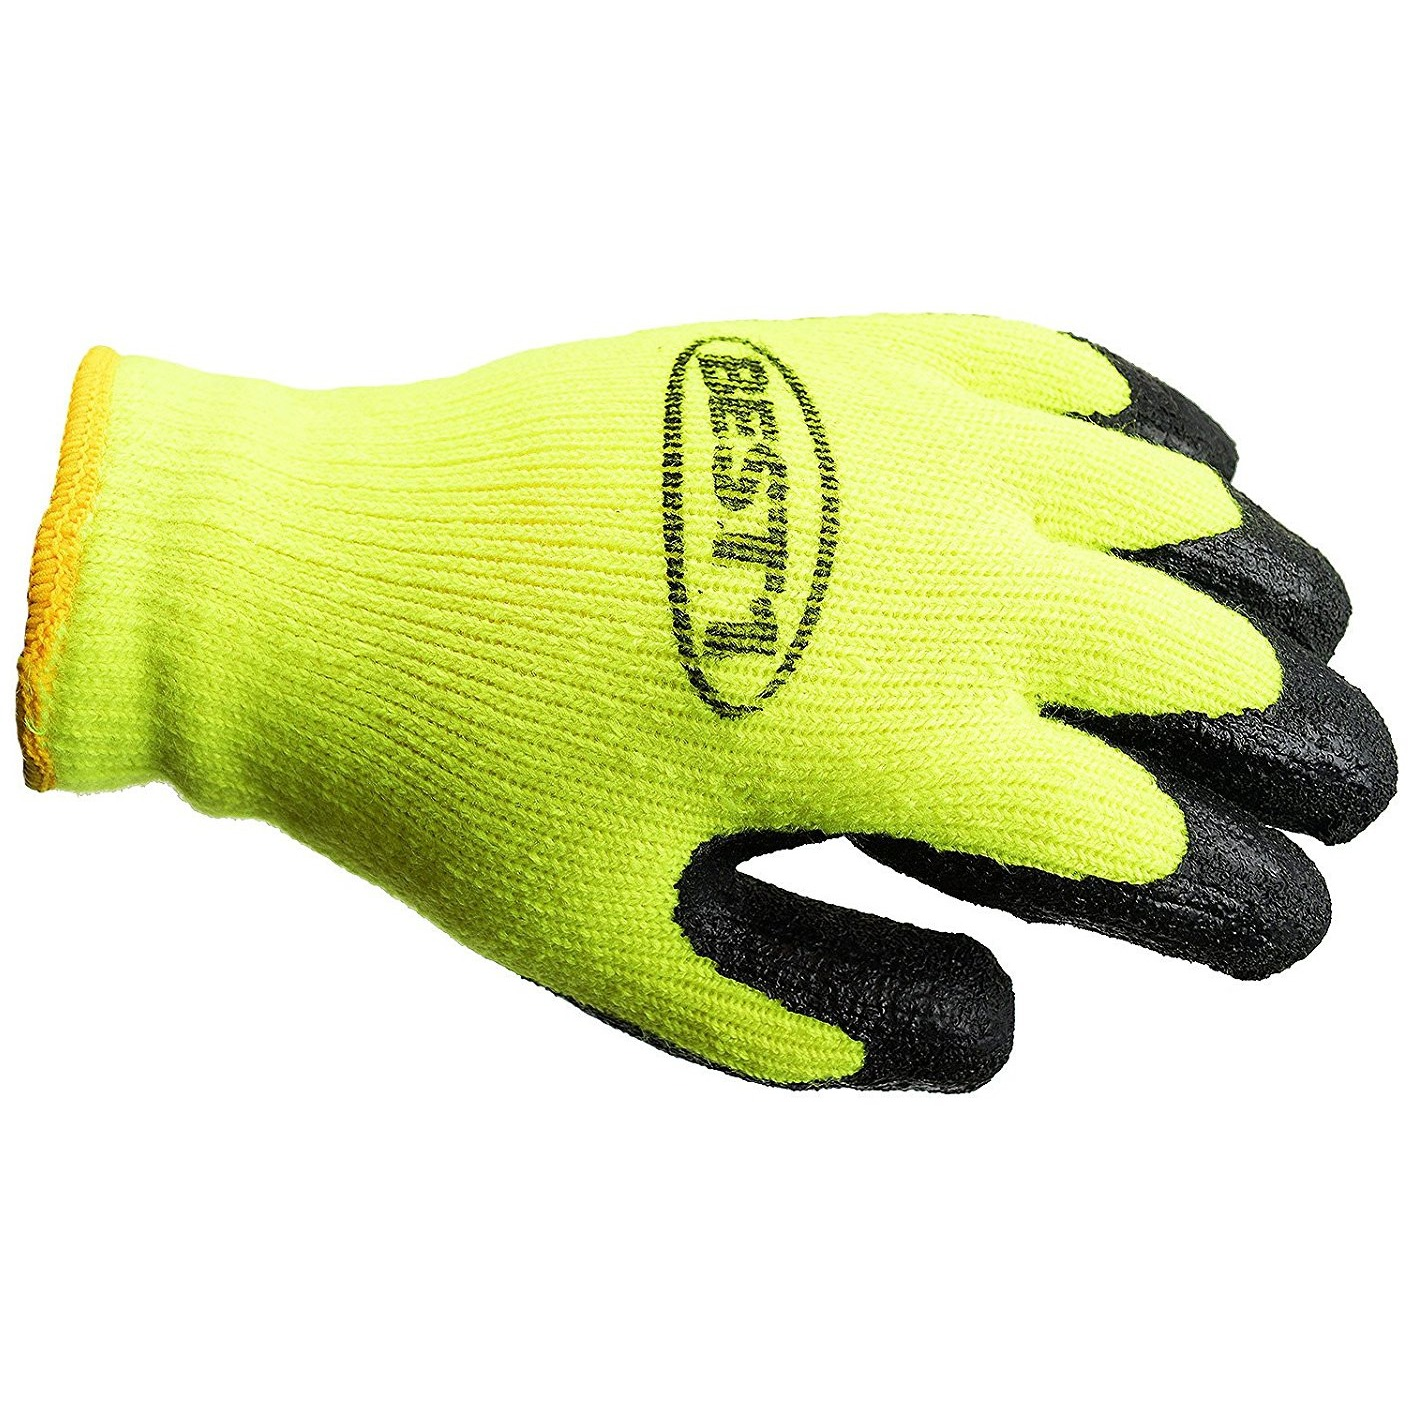 BEST1 Winter Insulated Rubber Latex Coated Work Gloves, Crinkle Pattern - Lime / Medium